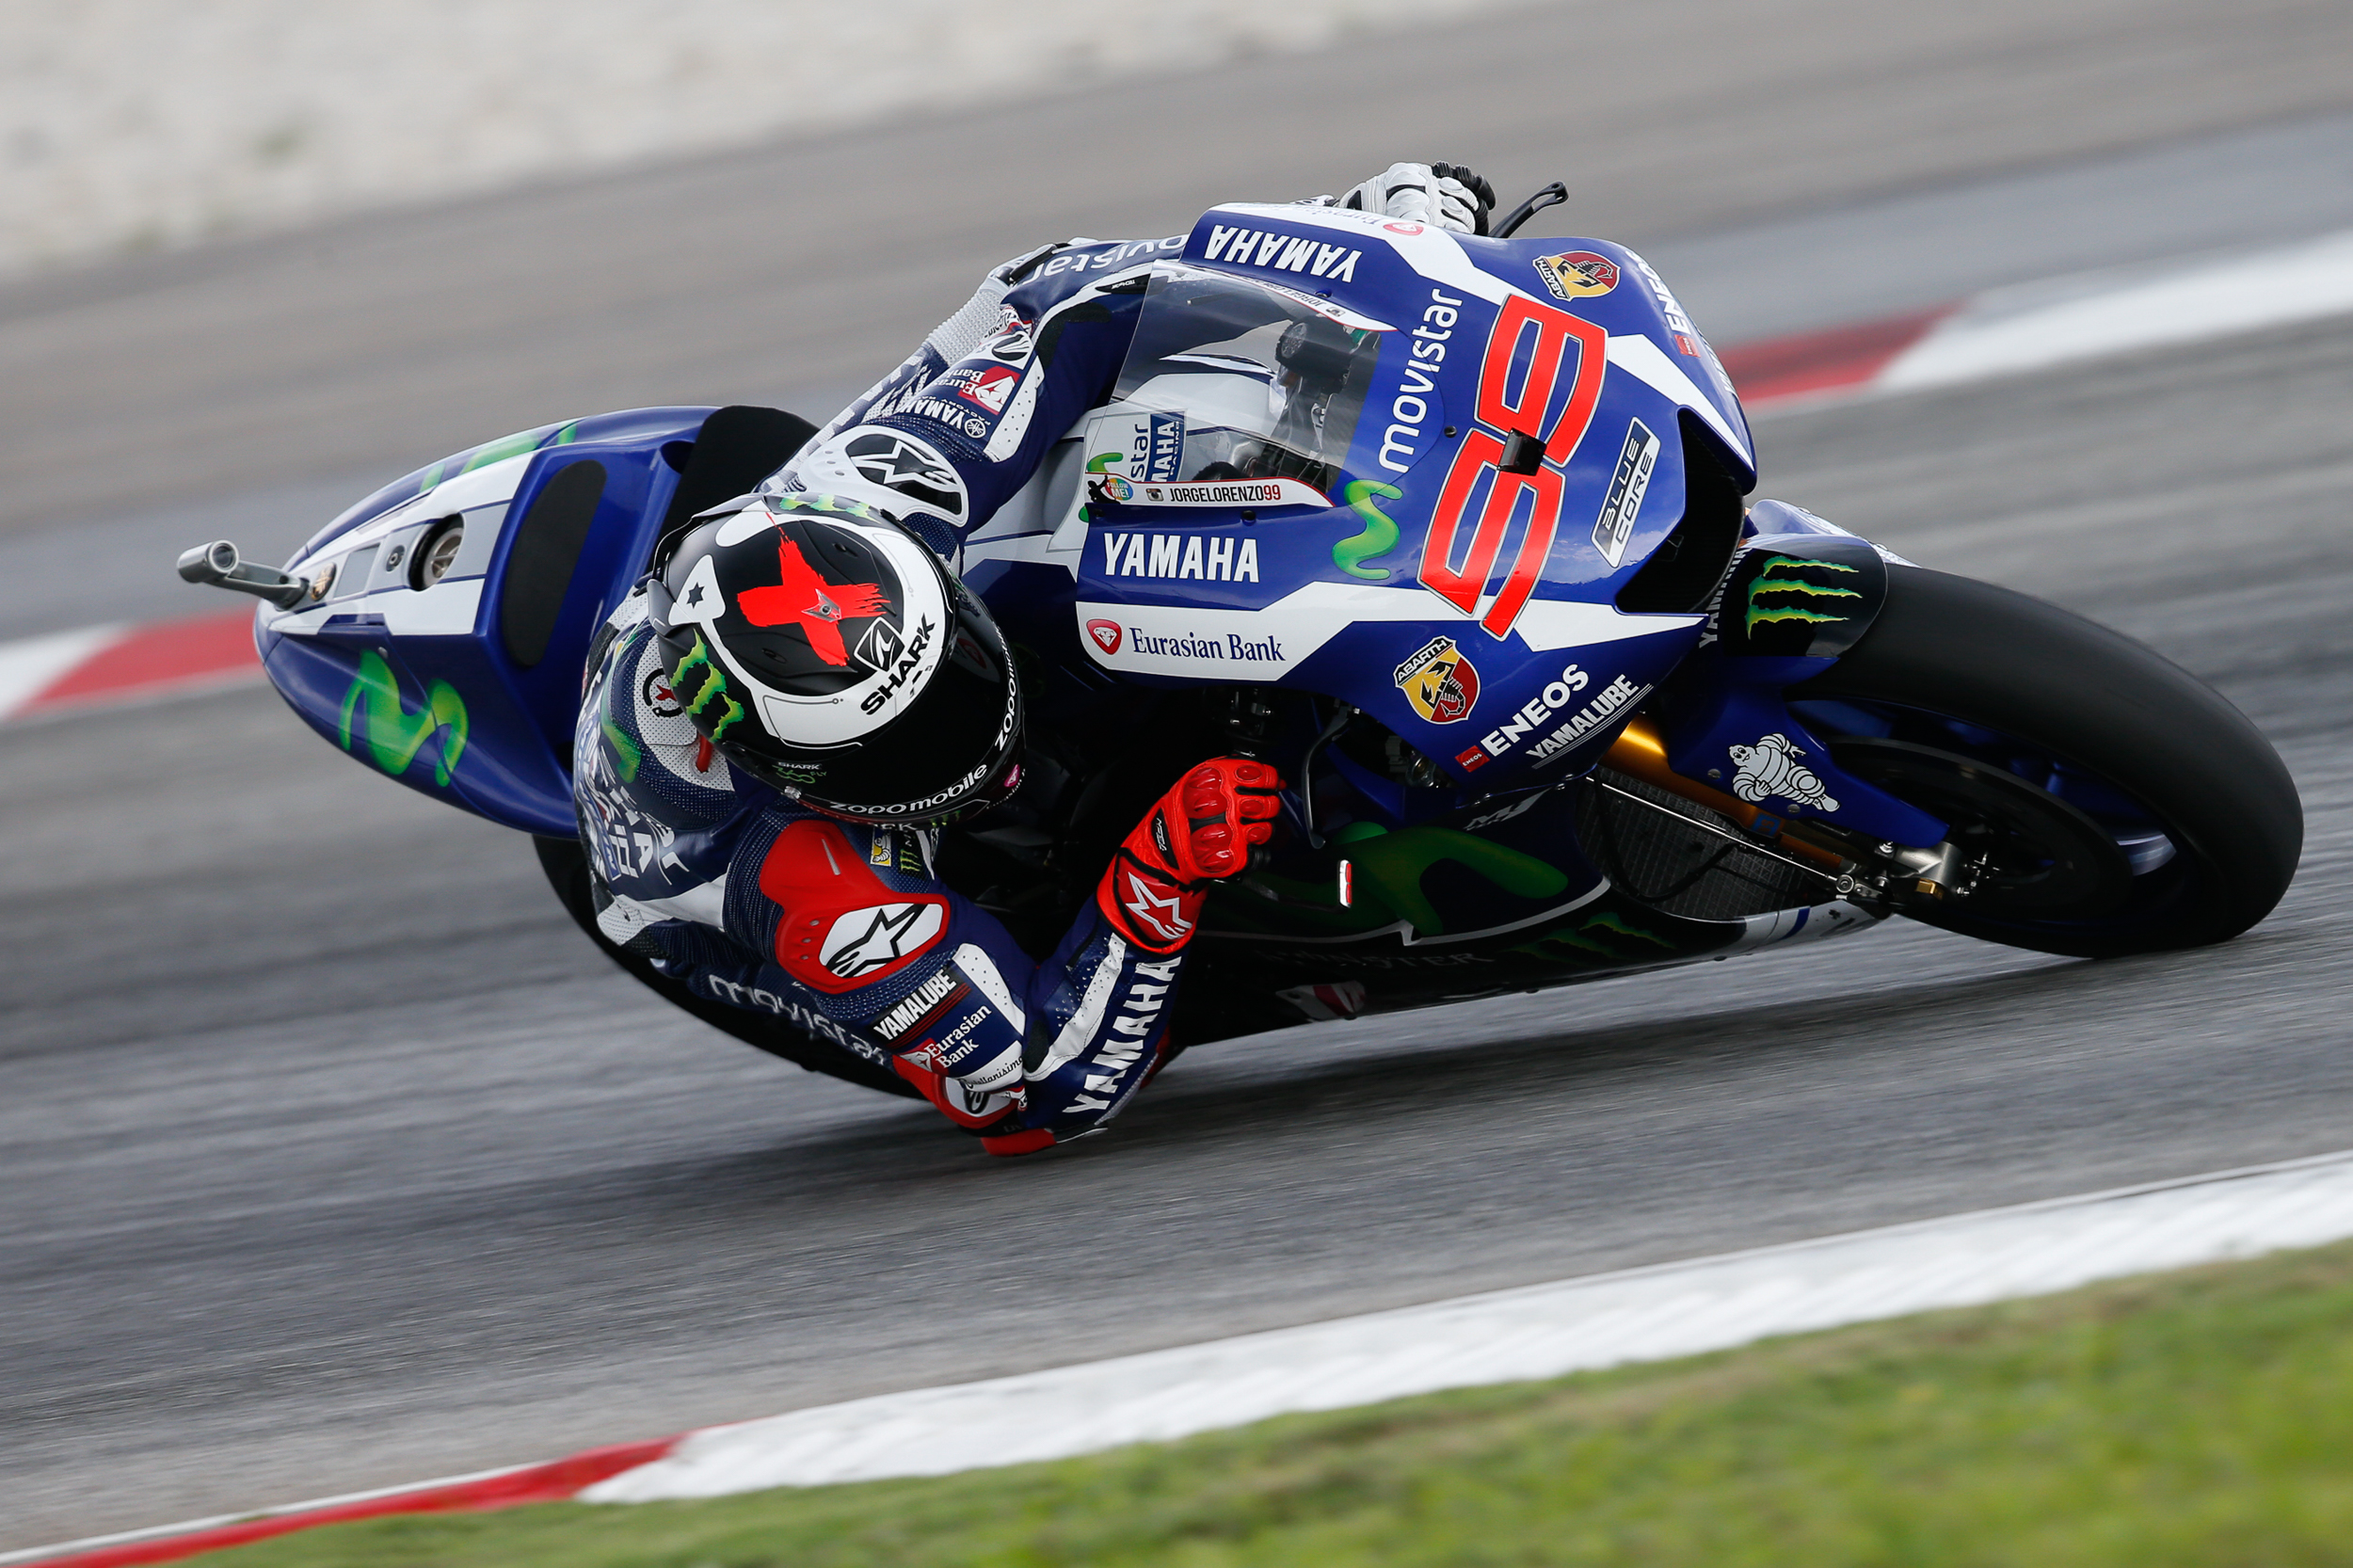 Lorenzo dominates inaugural day of 2016 - Bike Review